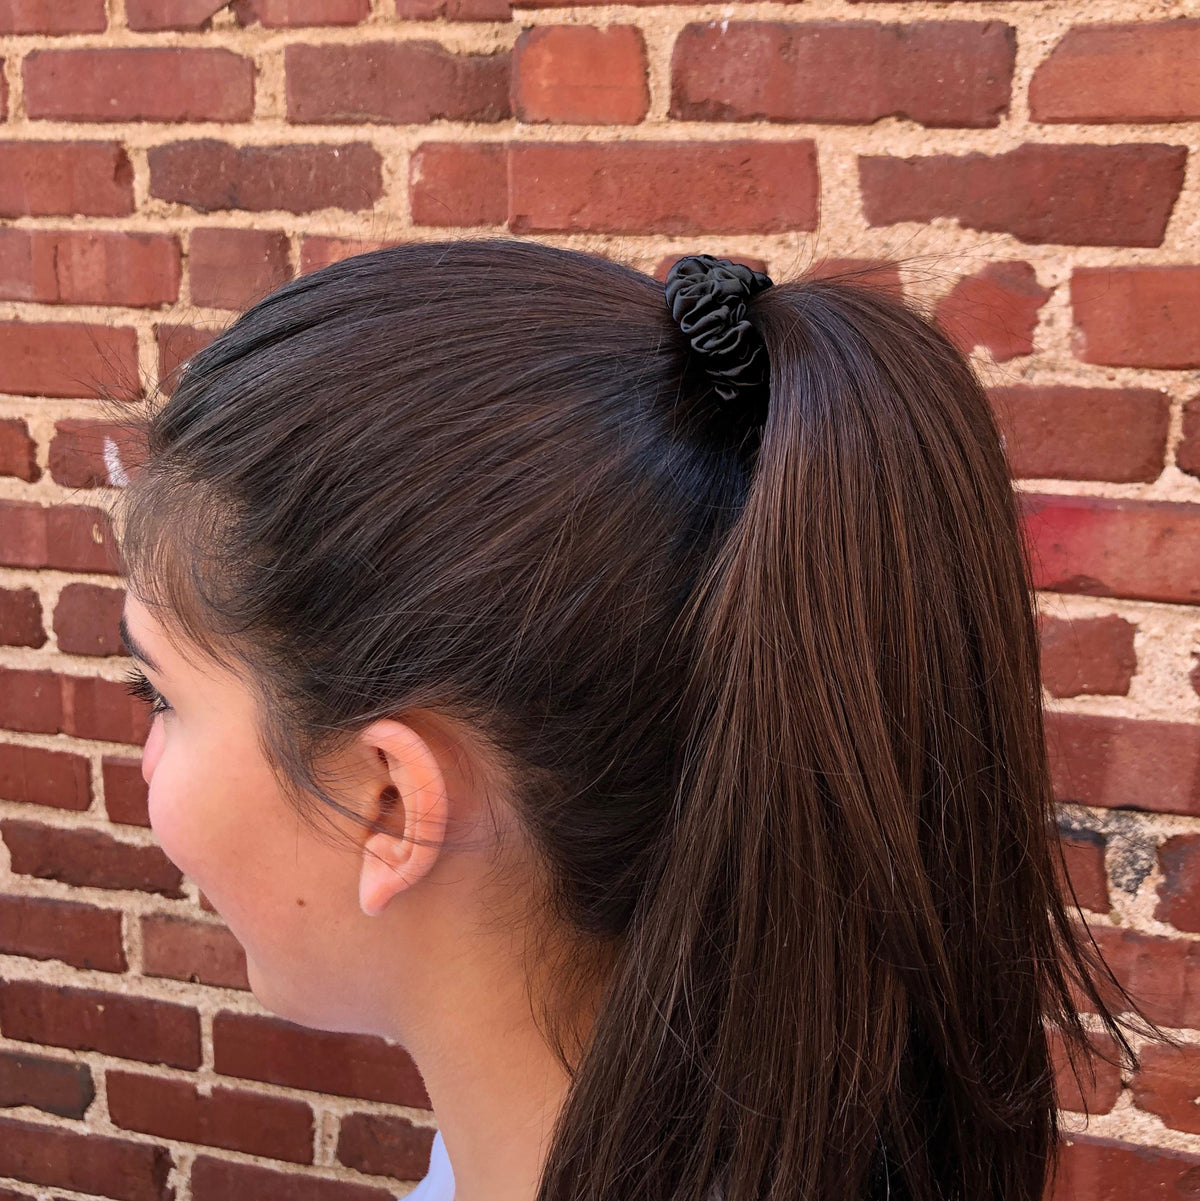 Small Midnight Black Silk Scrunchie in a womans hair